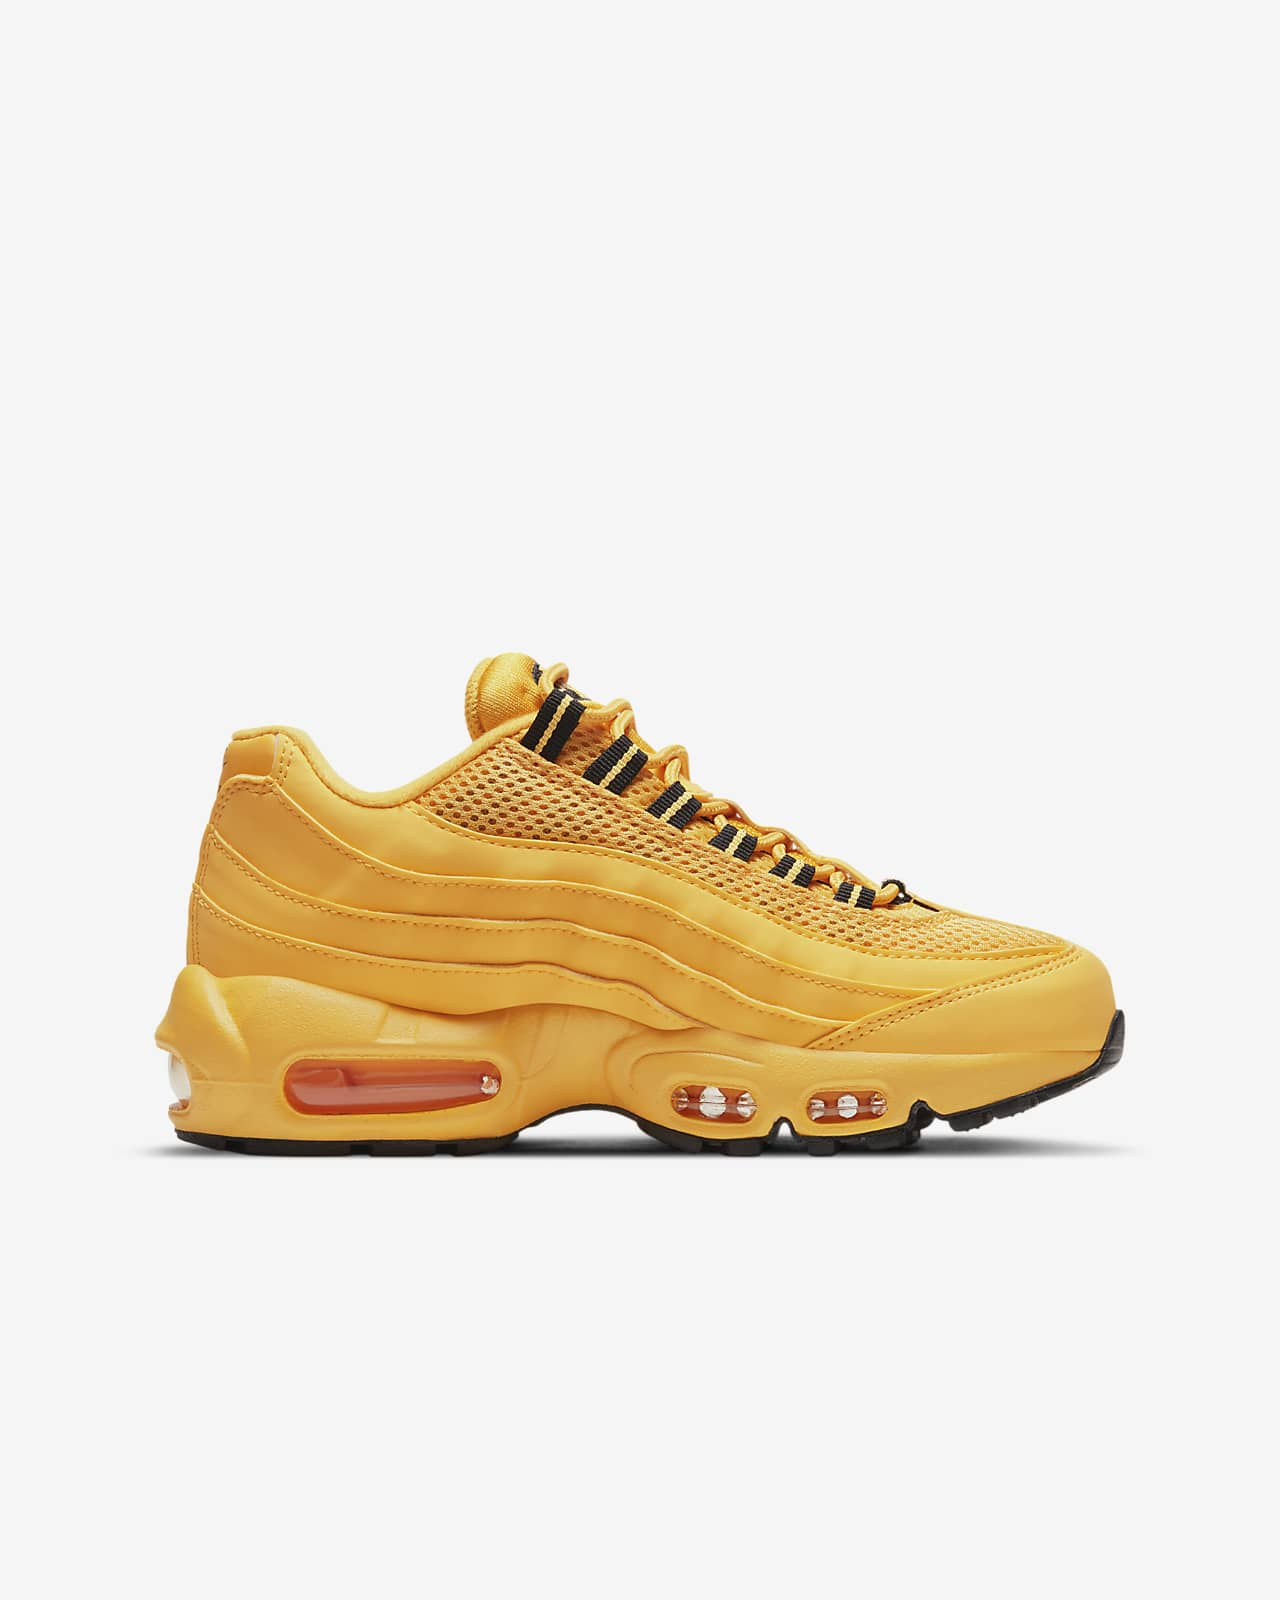 95 air max for kids size 5